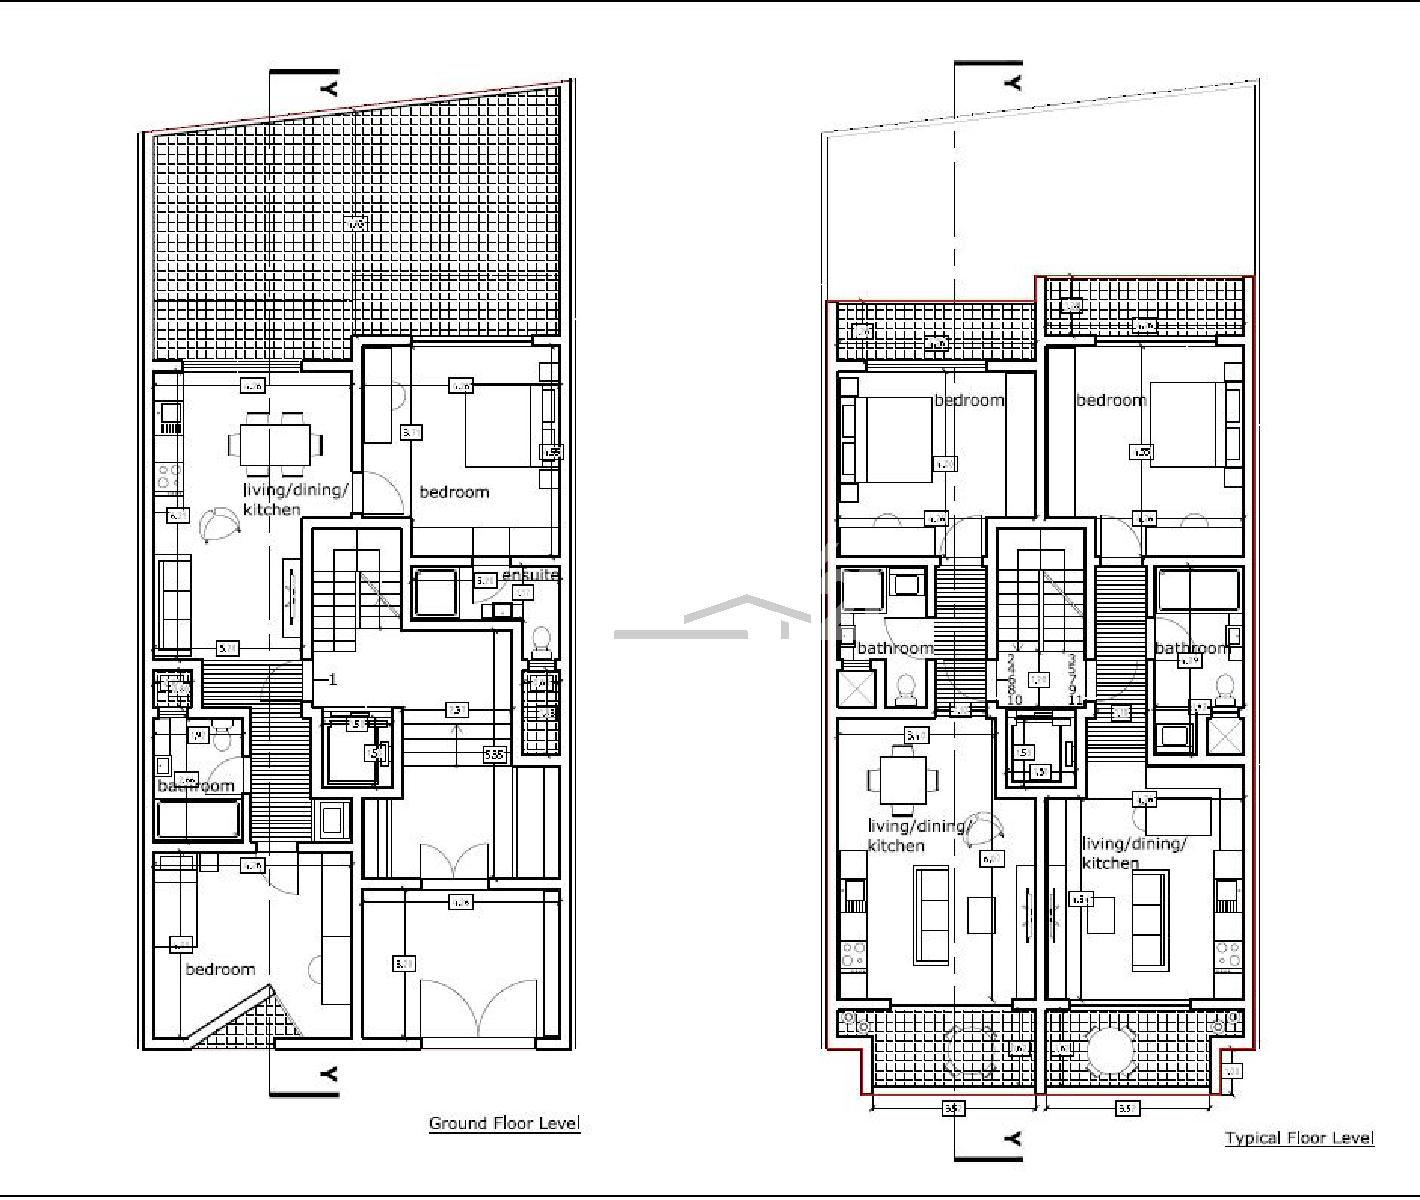 013CF10117–Finished Apartment